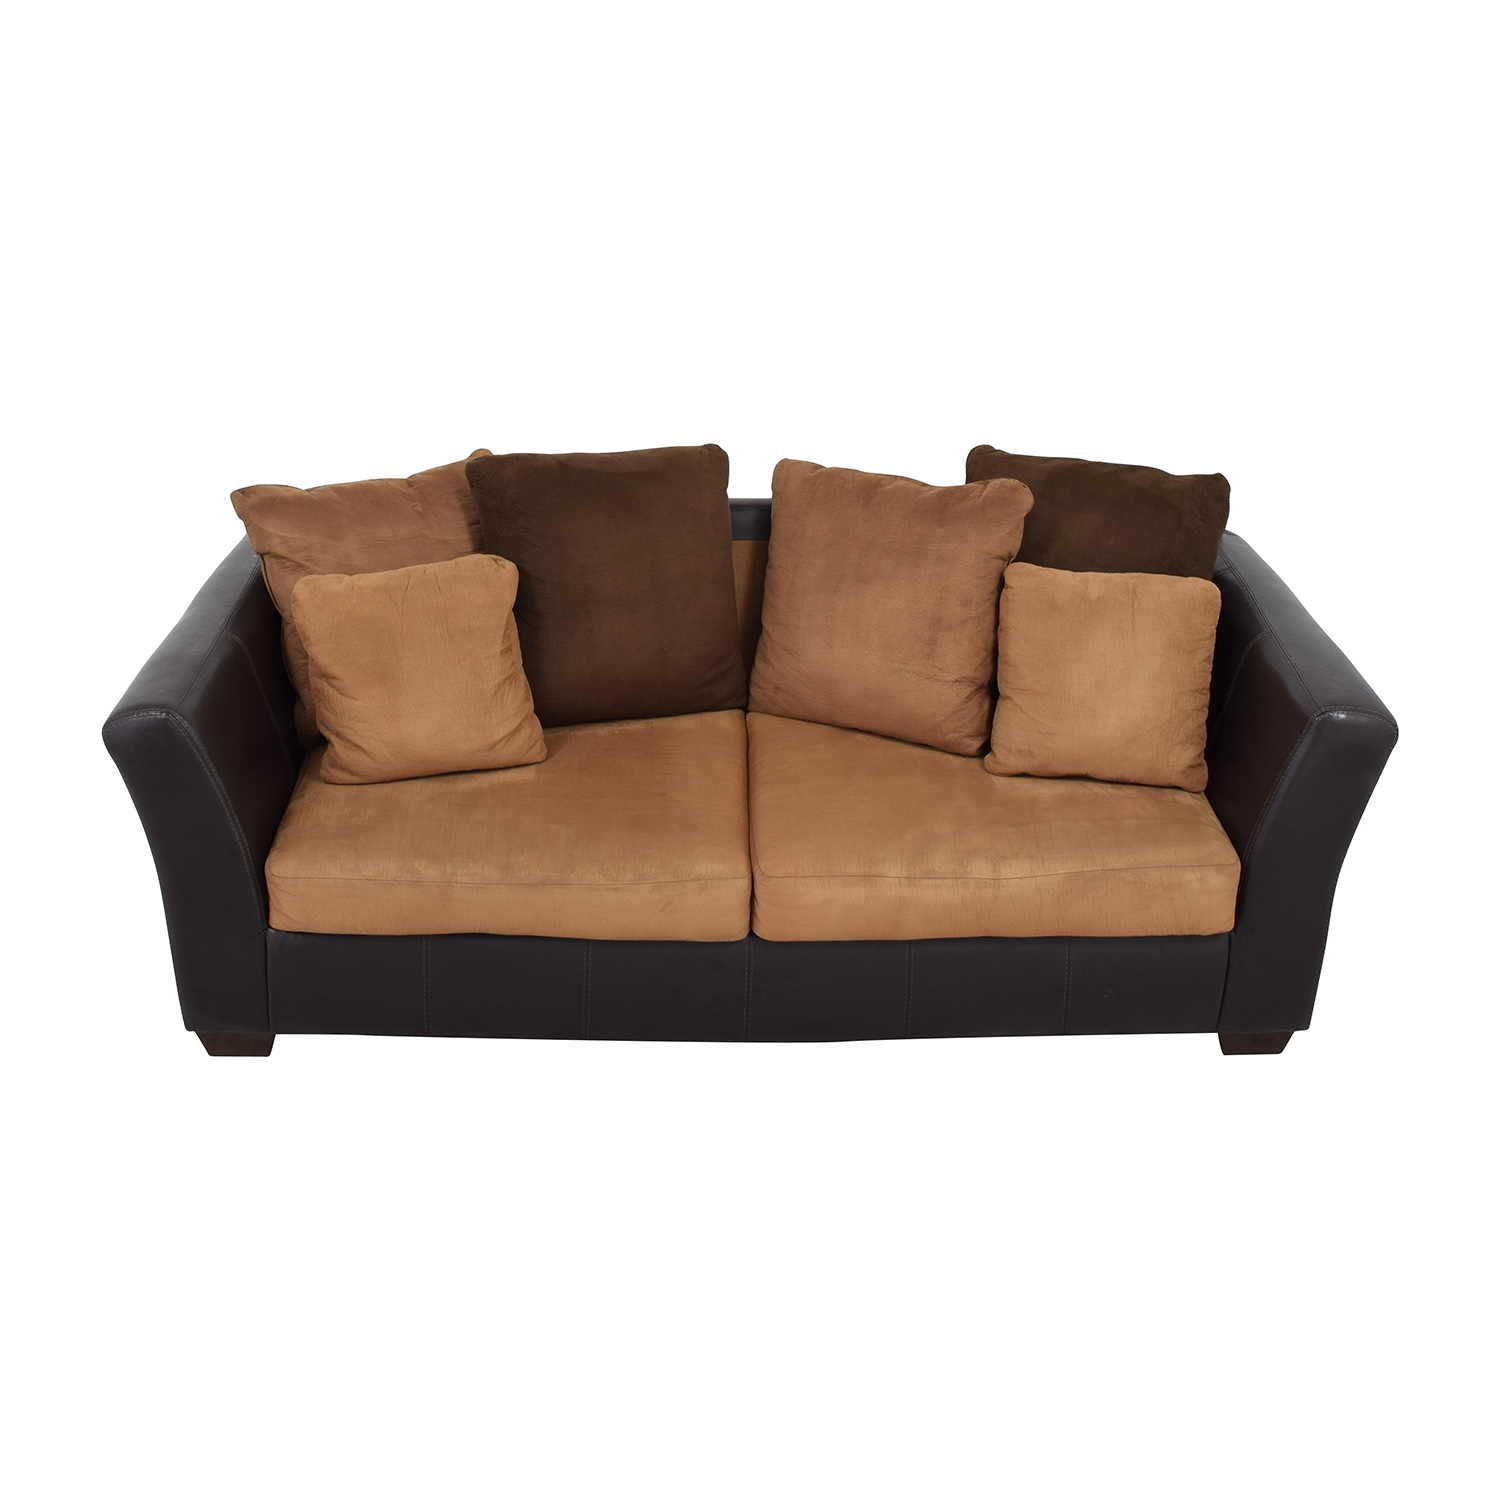 raymond and flanigan sofa bed snuggle dfs sofas second hand